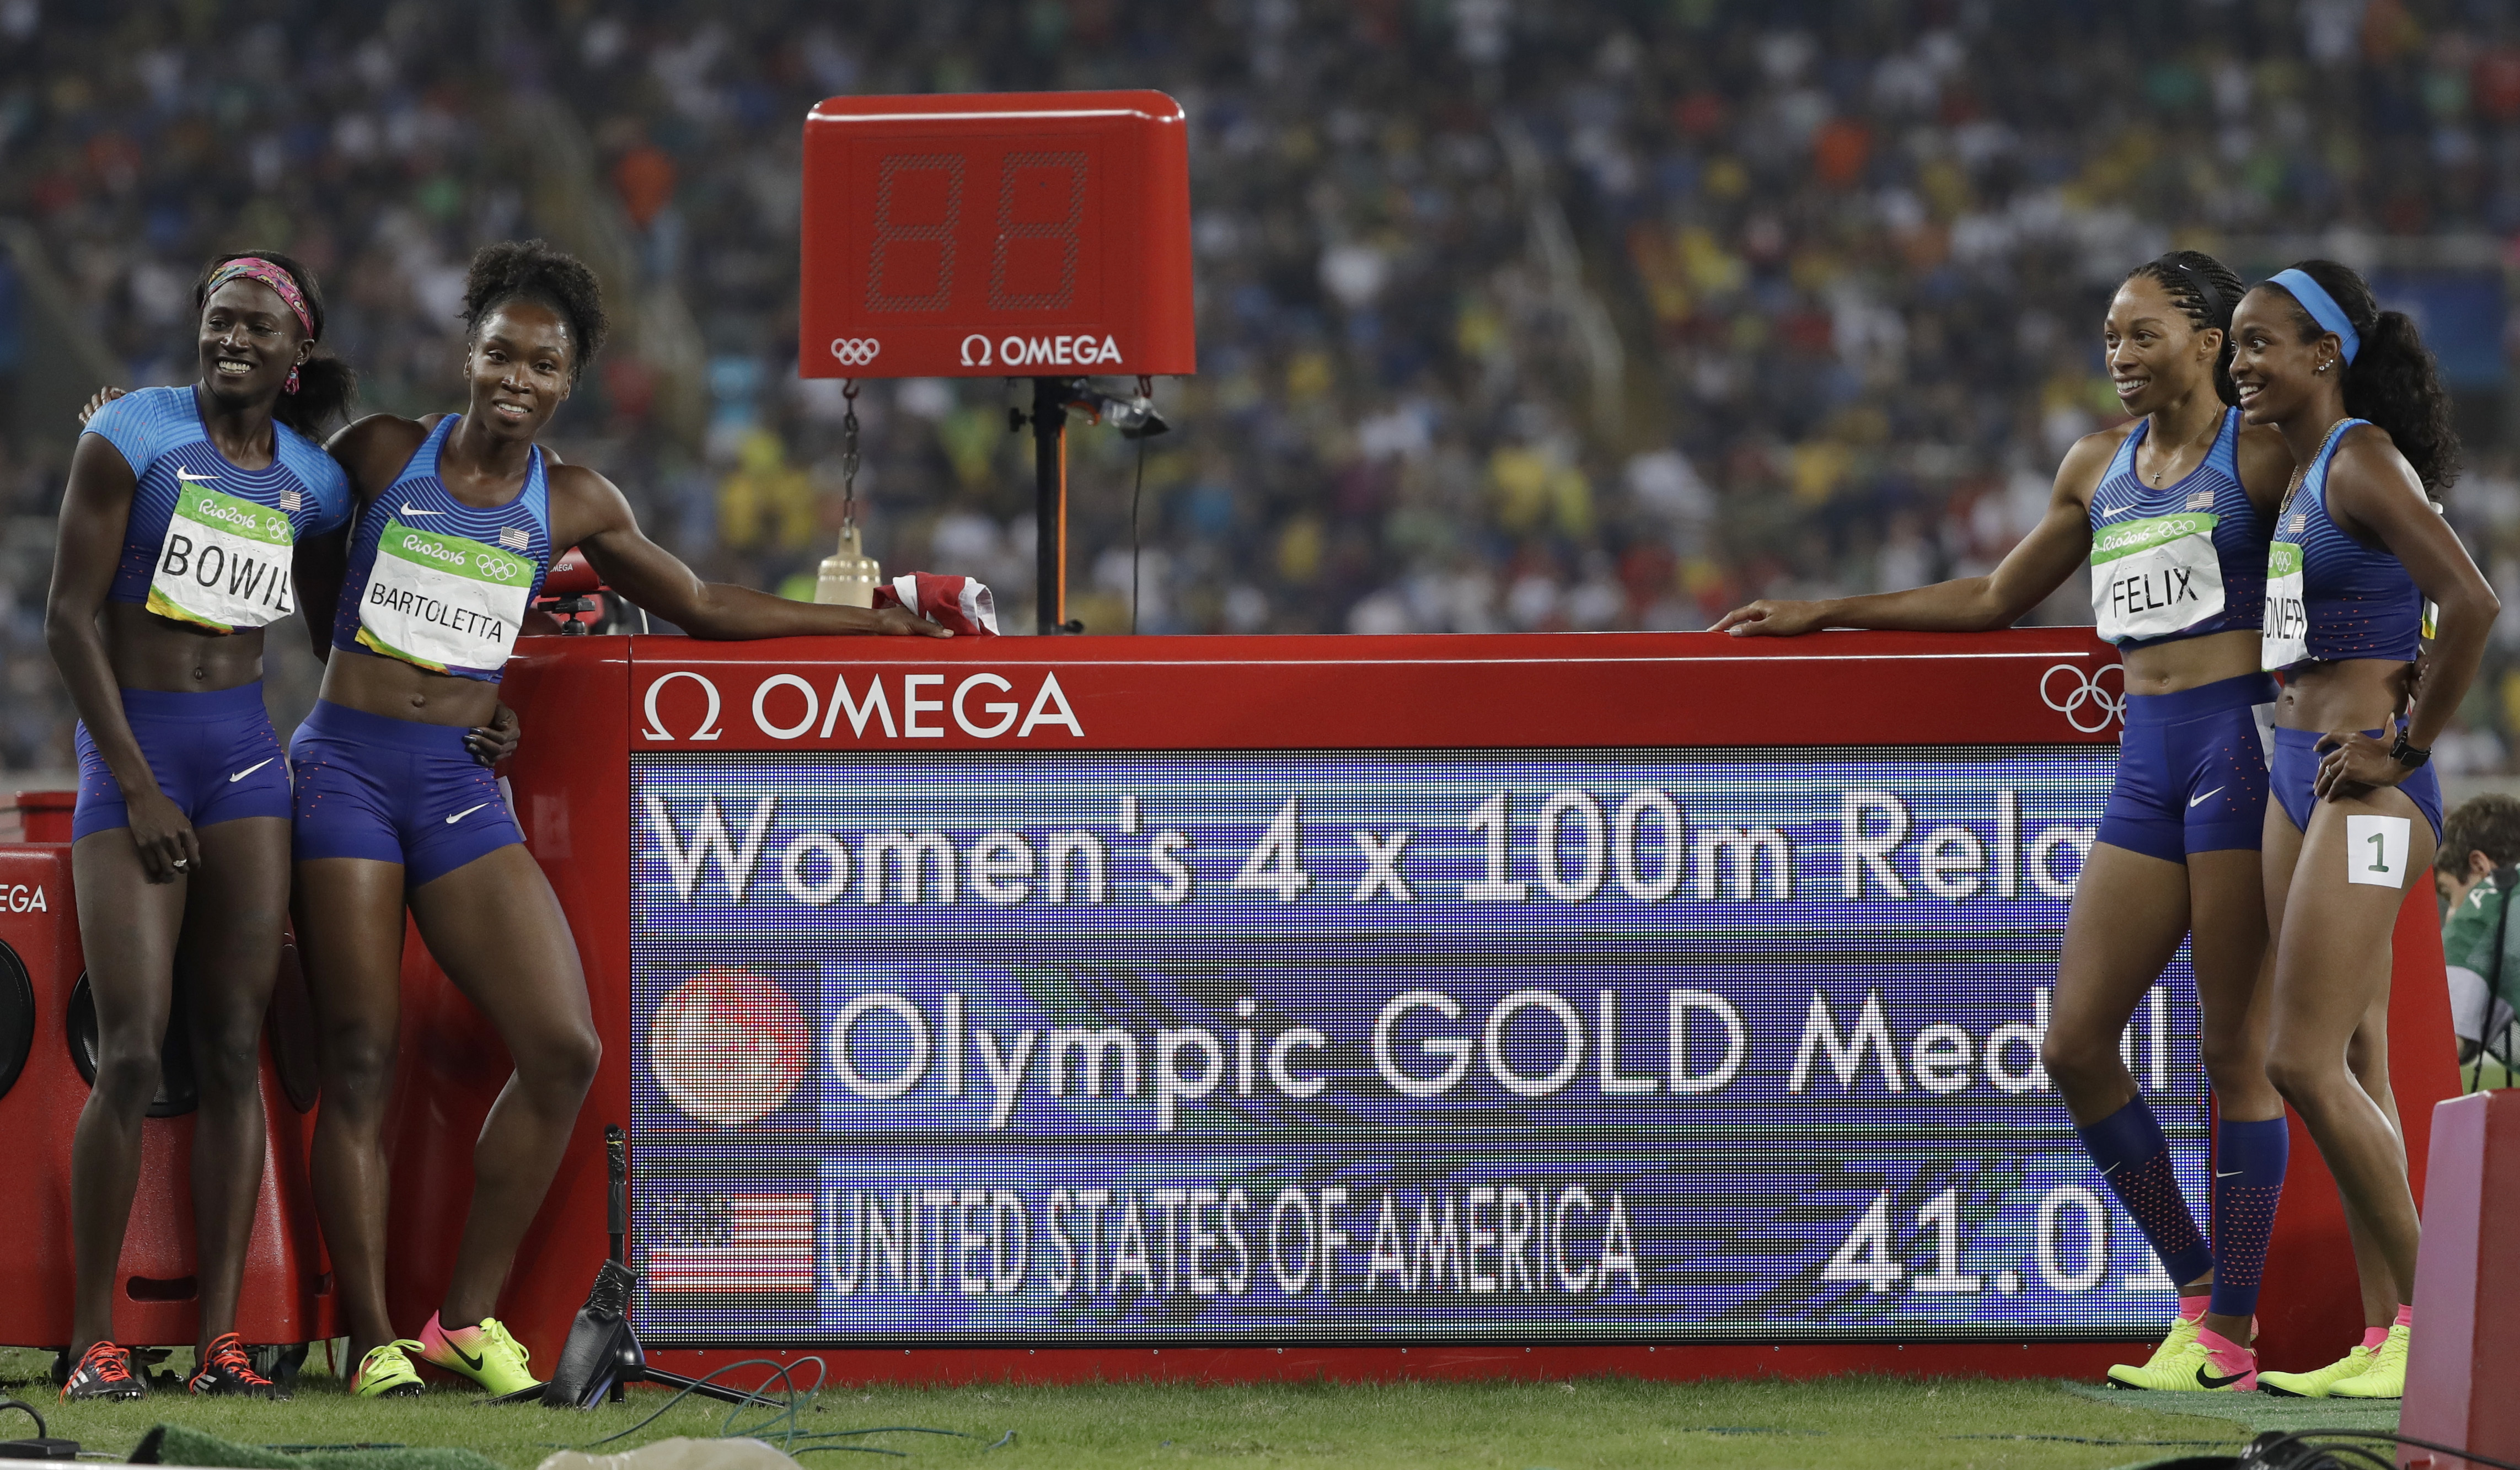 The United States team from left, Tori Bowie, Tianna Bartoletta, Allyson Felix and English Gardner celebrate winning the gold medal in the women's 4x100-meter relay final during the athletics competitions of the 2016 Summer Olympics at the Olympic stadium